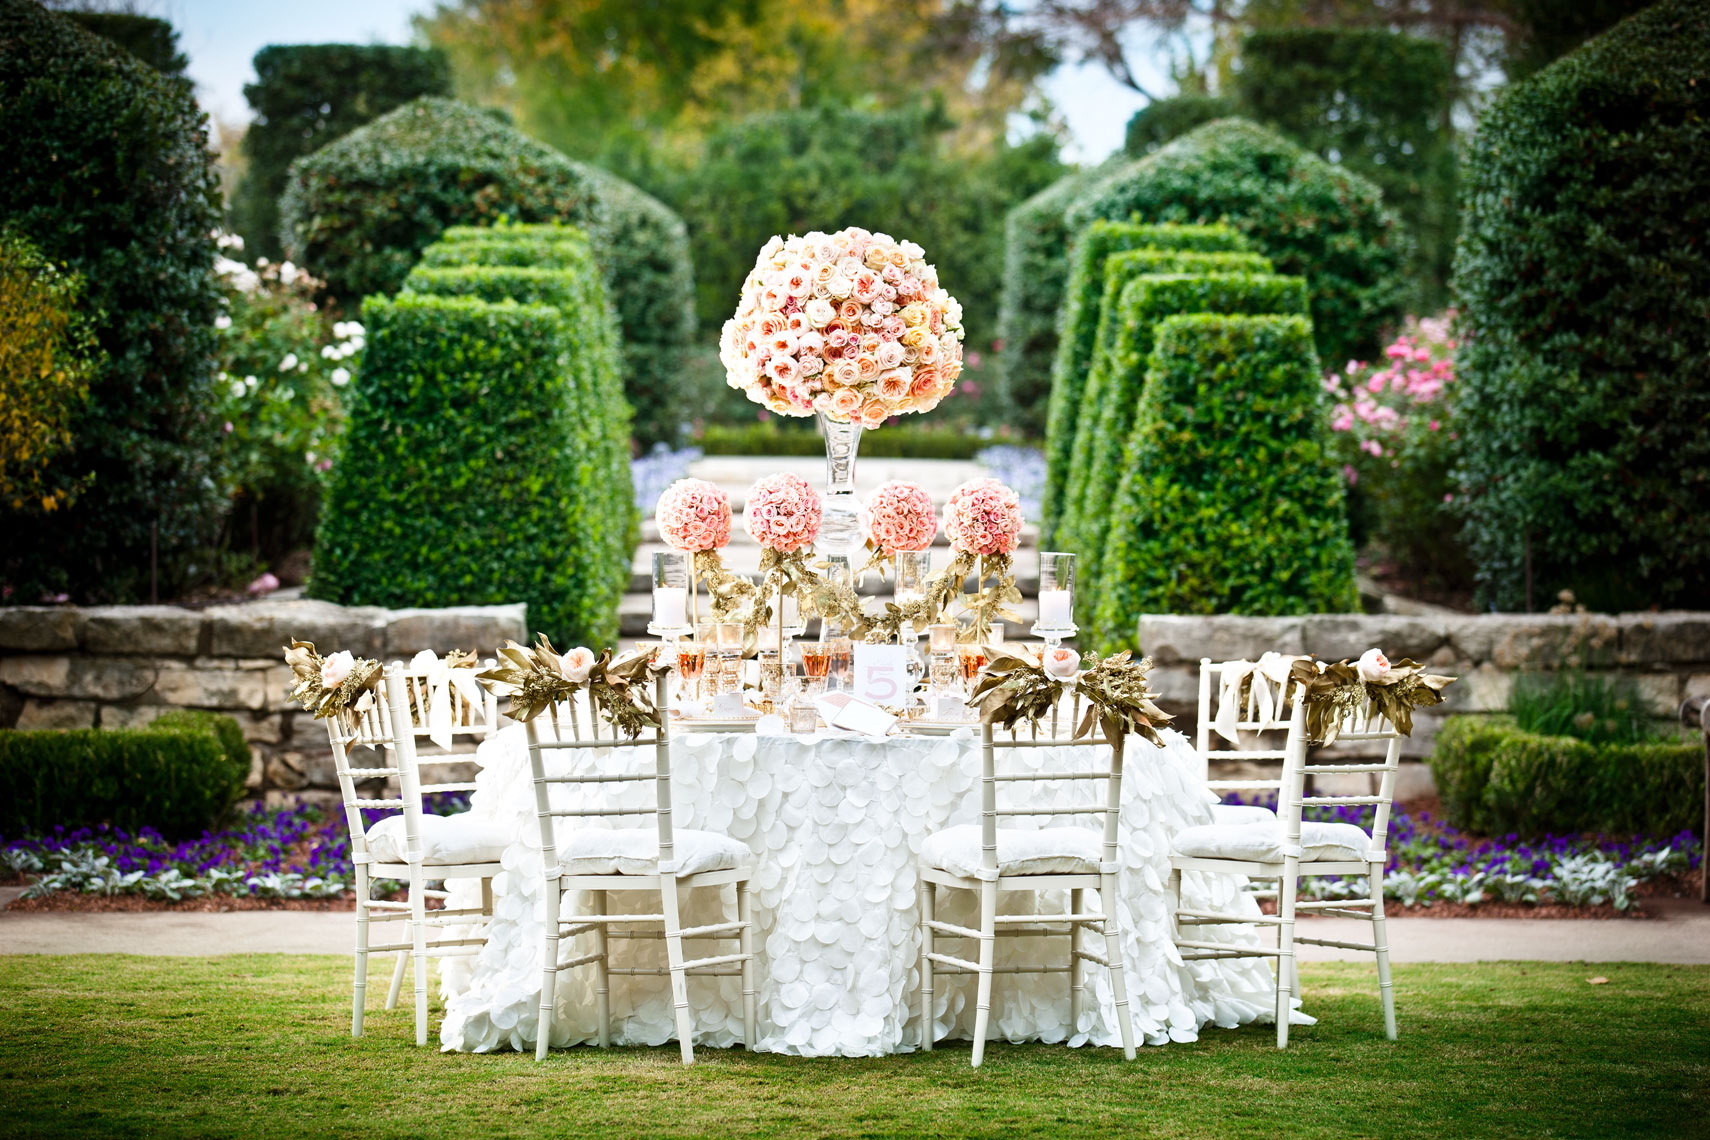 Editorial Table Scape outdoor table setting Photography  Dallas Texas for D Magazine